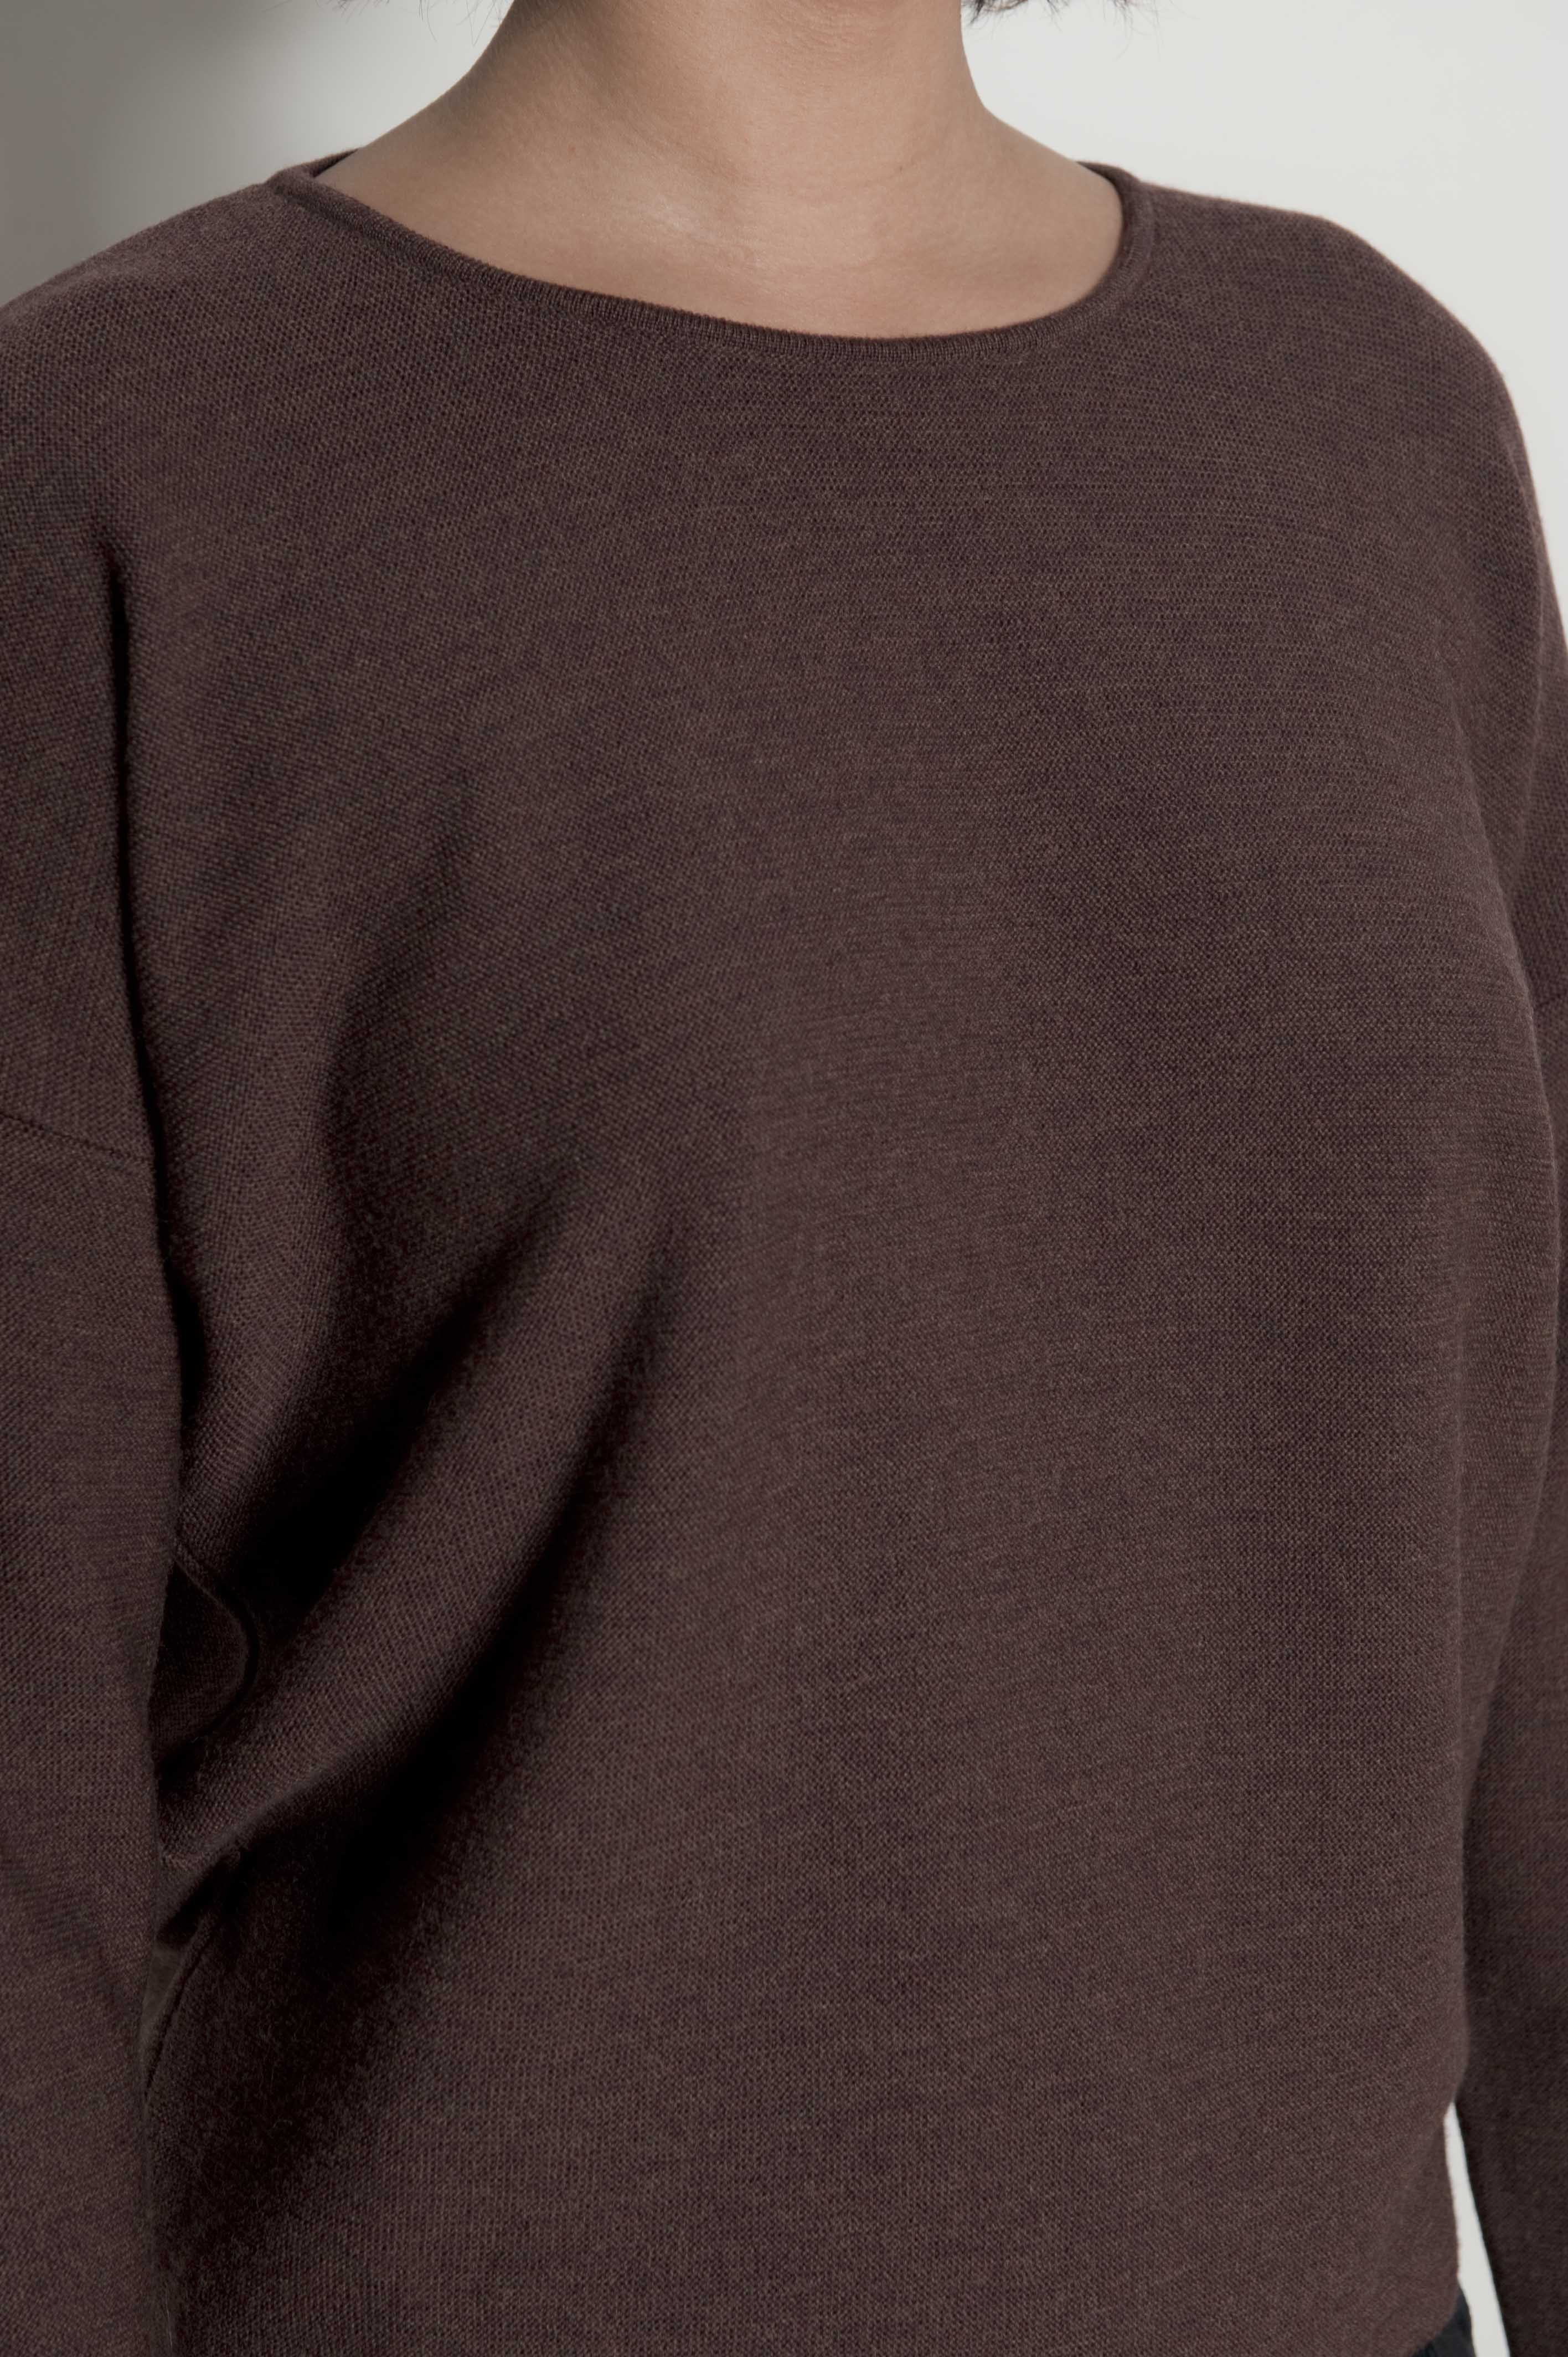 Crew Neck Sweater 100 New Wool Merino Extrafine Sugar